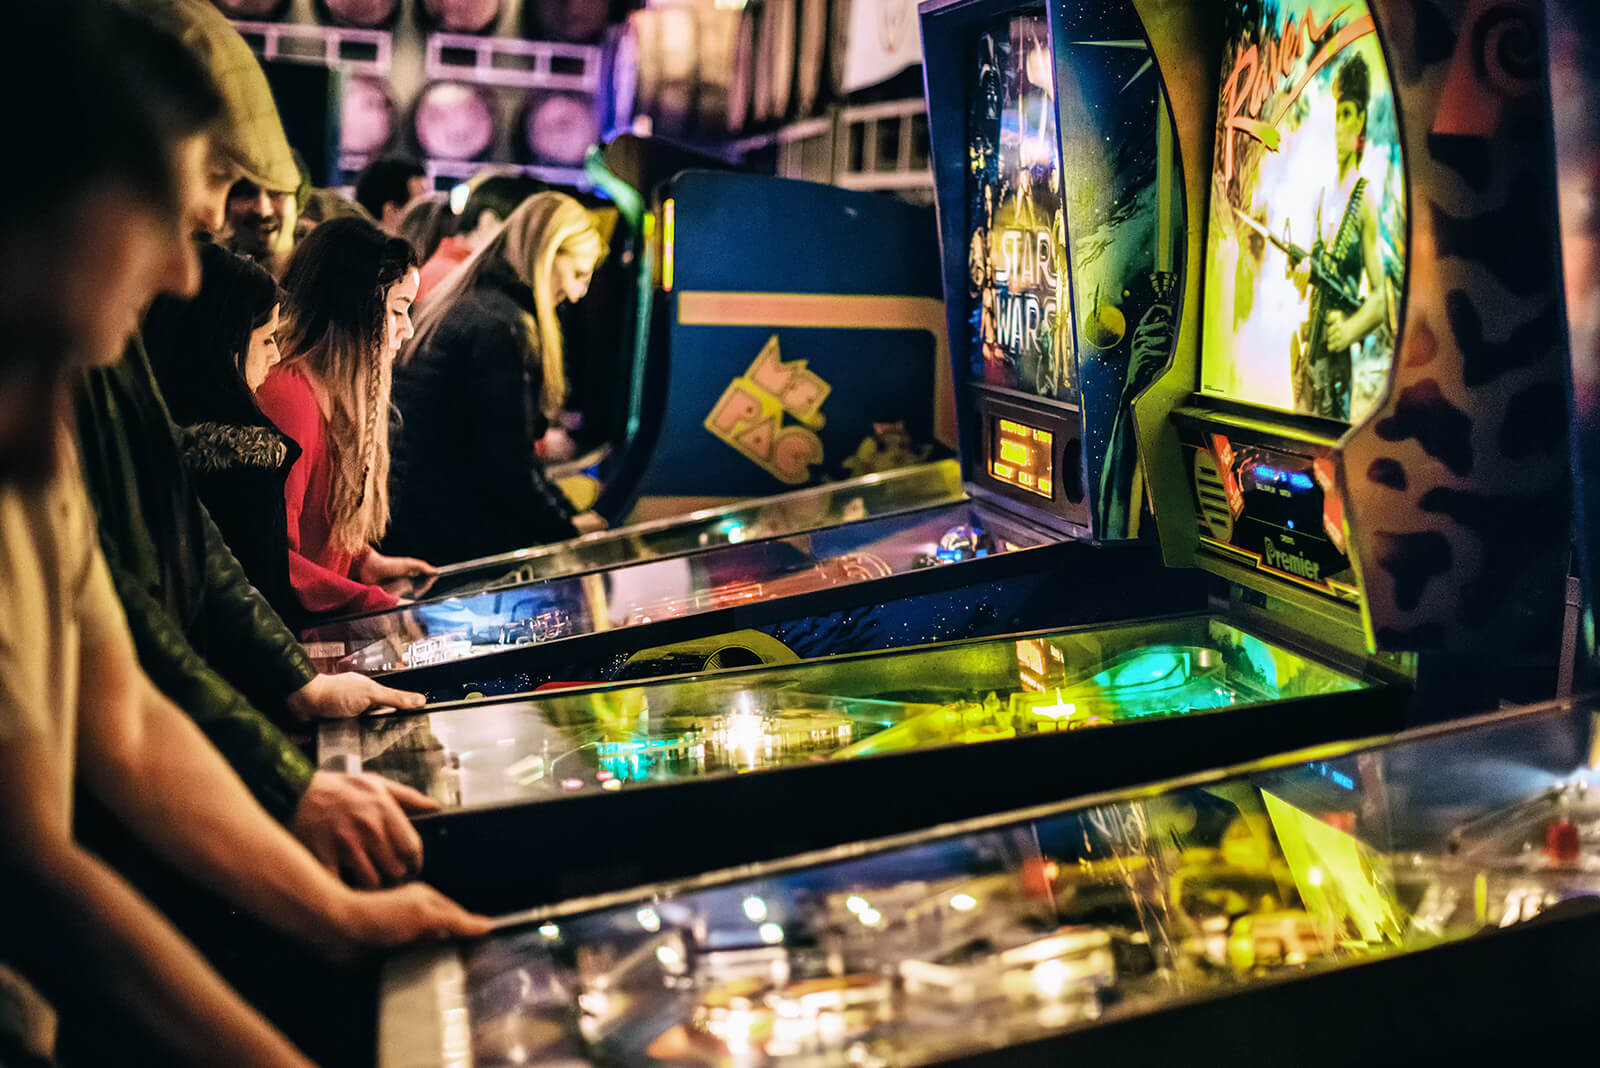 The Pac-Man Play Arcade is one of Atlanta's coolest and most offbeat places to visit